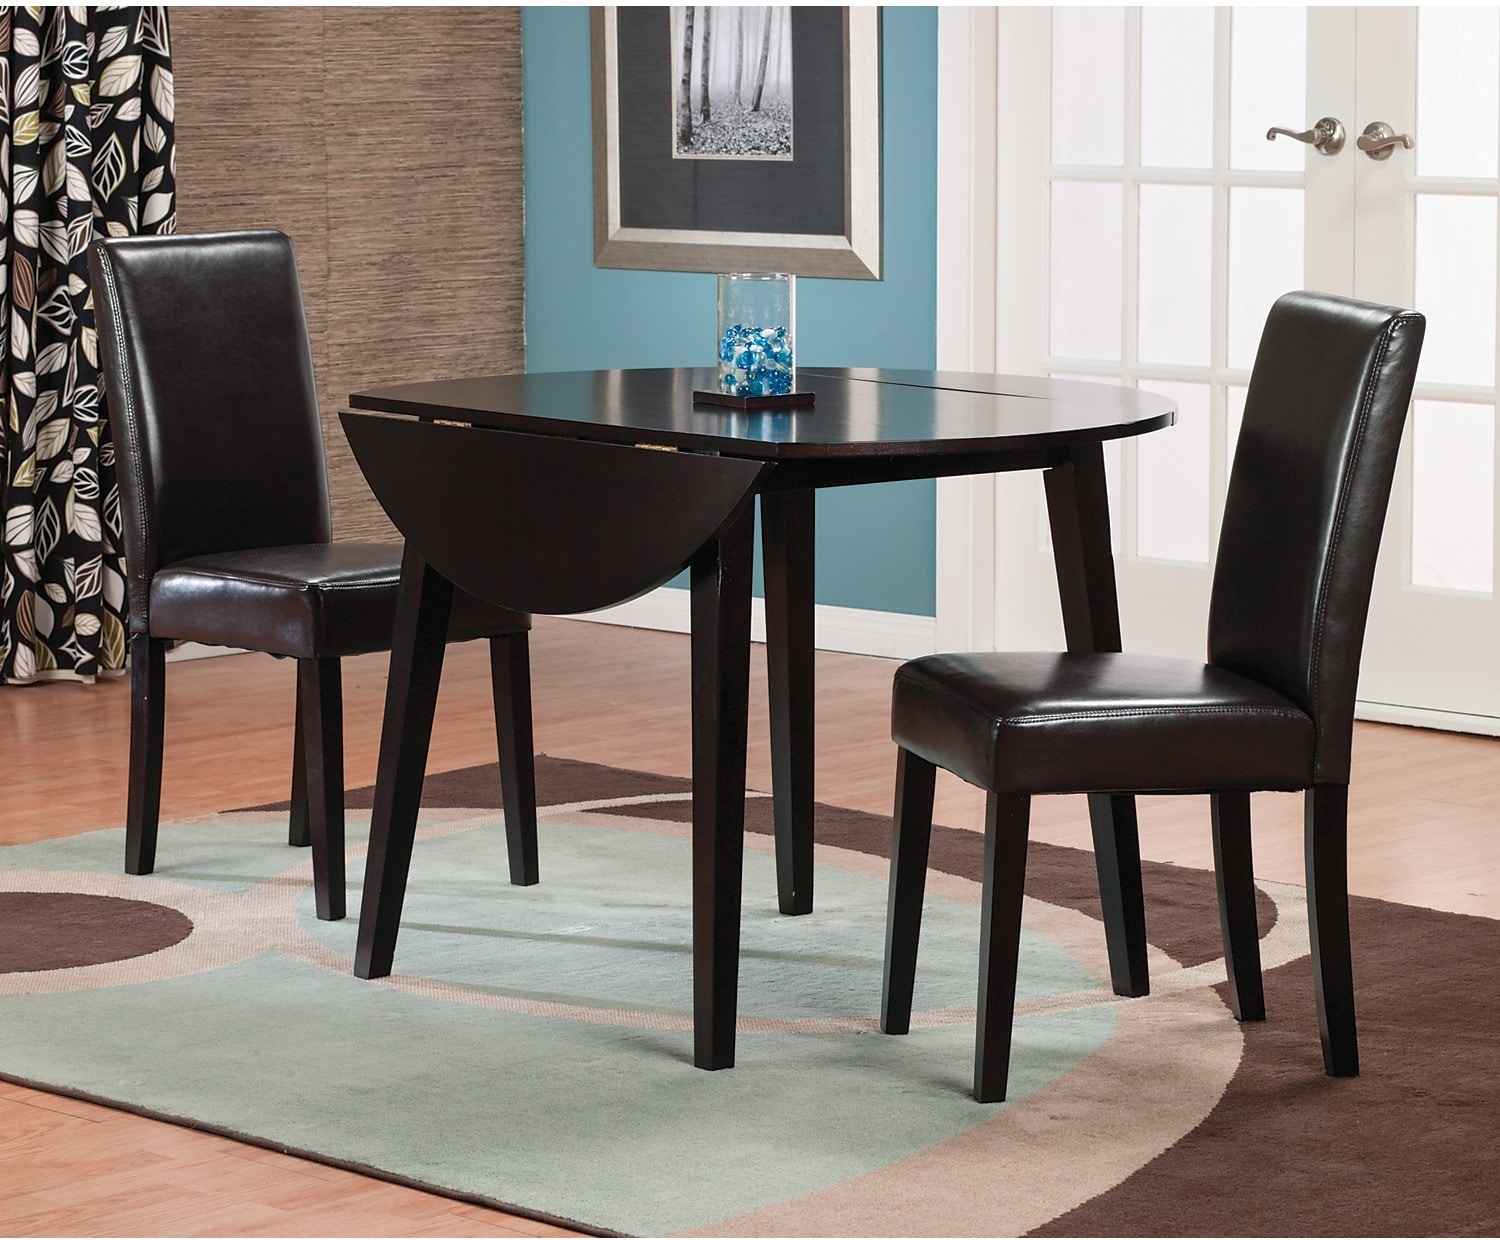 Dakota 3-Piece Dining Package w/ Brown Faux Leather Chairs